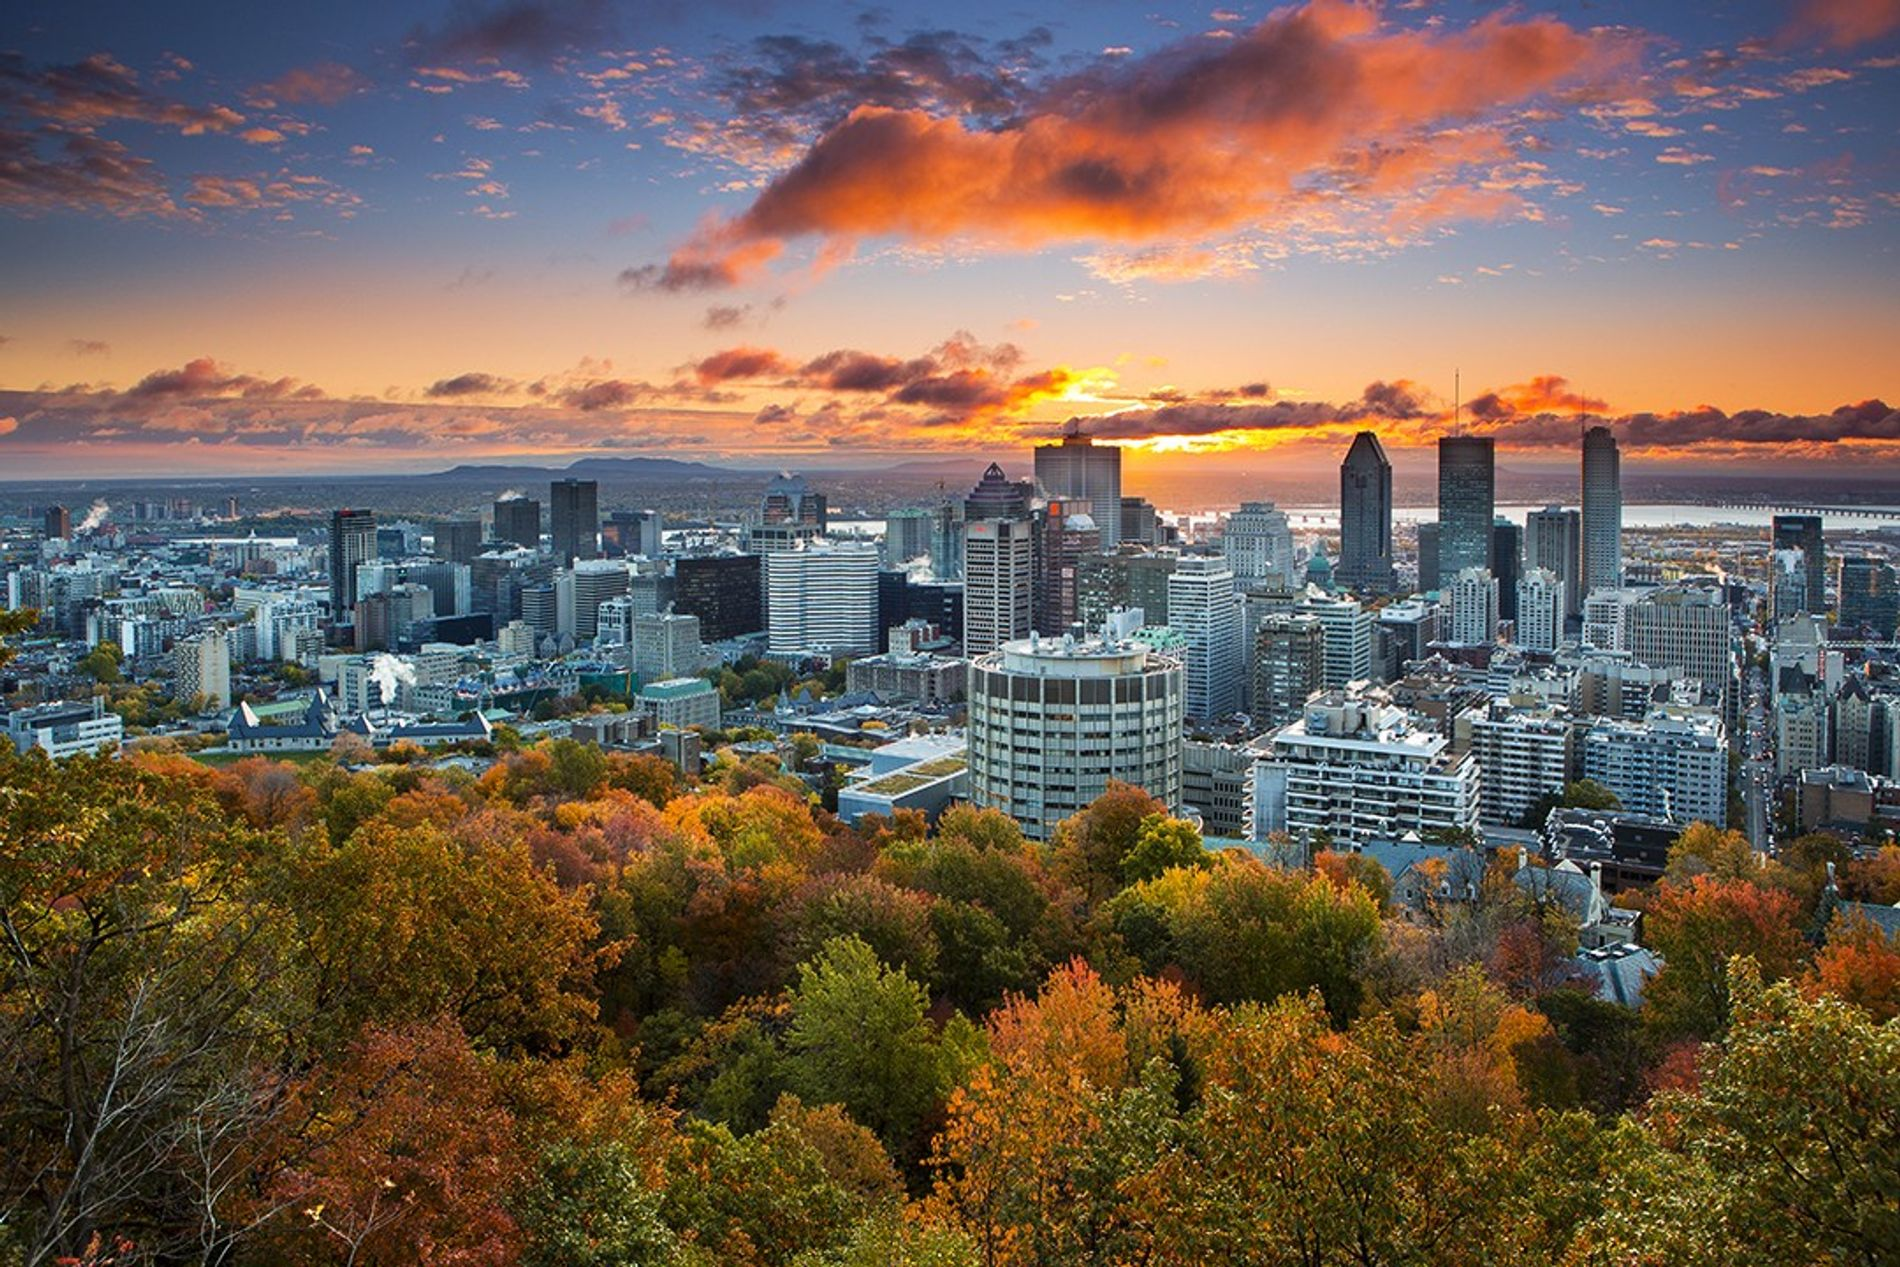 The dramatic skyline of Montreal at sunset from Kondiaronk Lookout on Mount Royal Park.